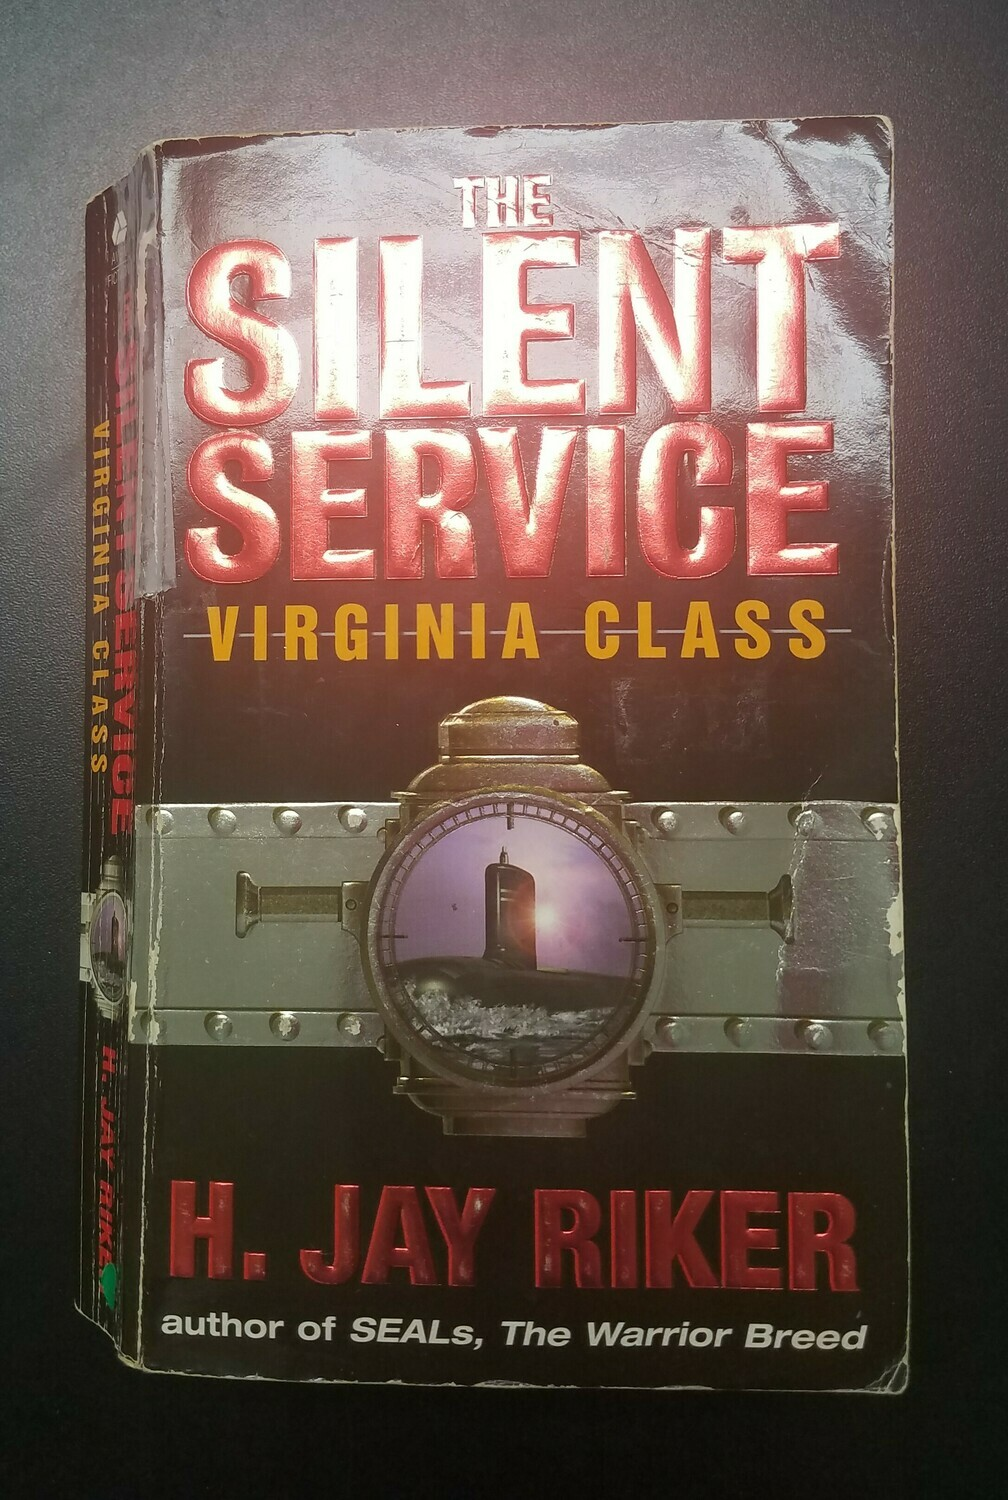 The Silent Service: Virginia Class by H. Jay Riker